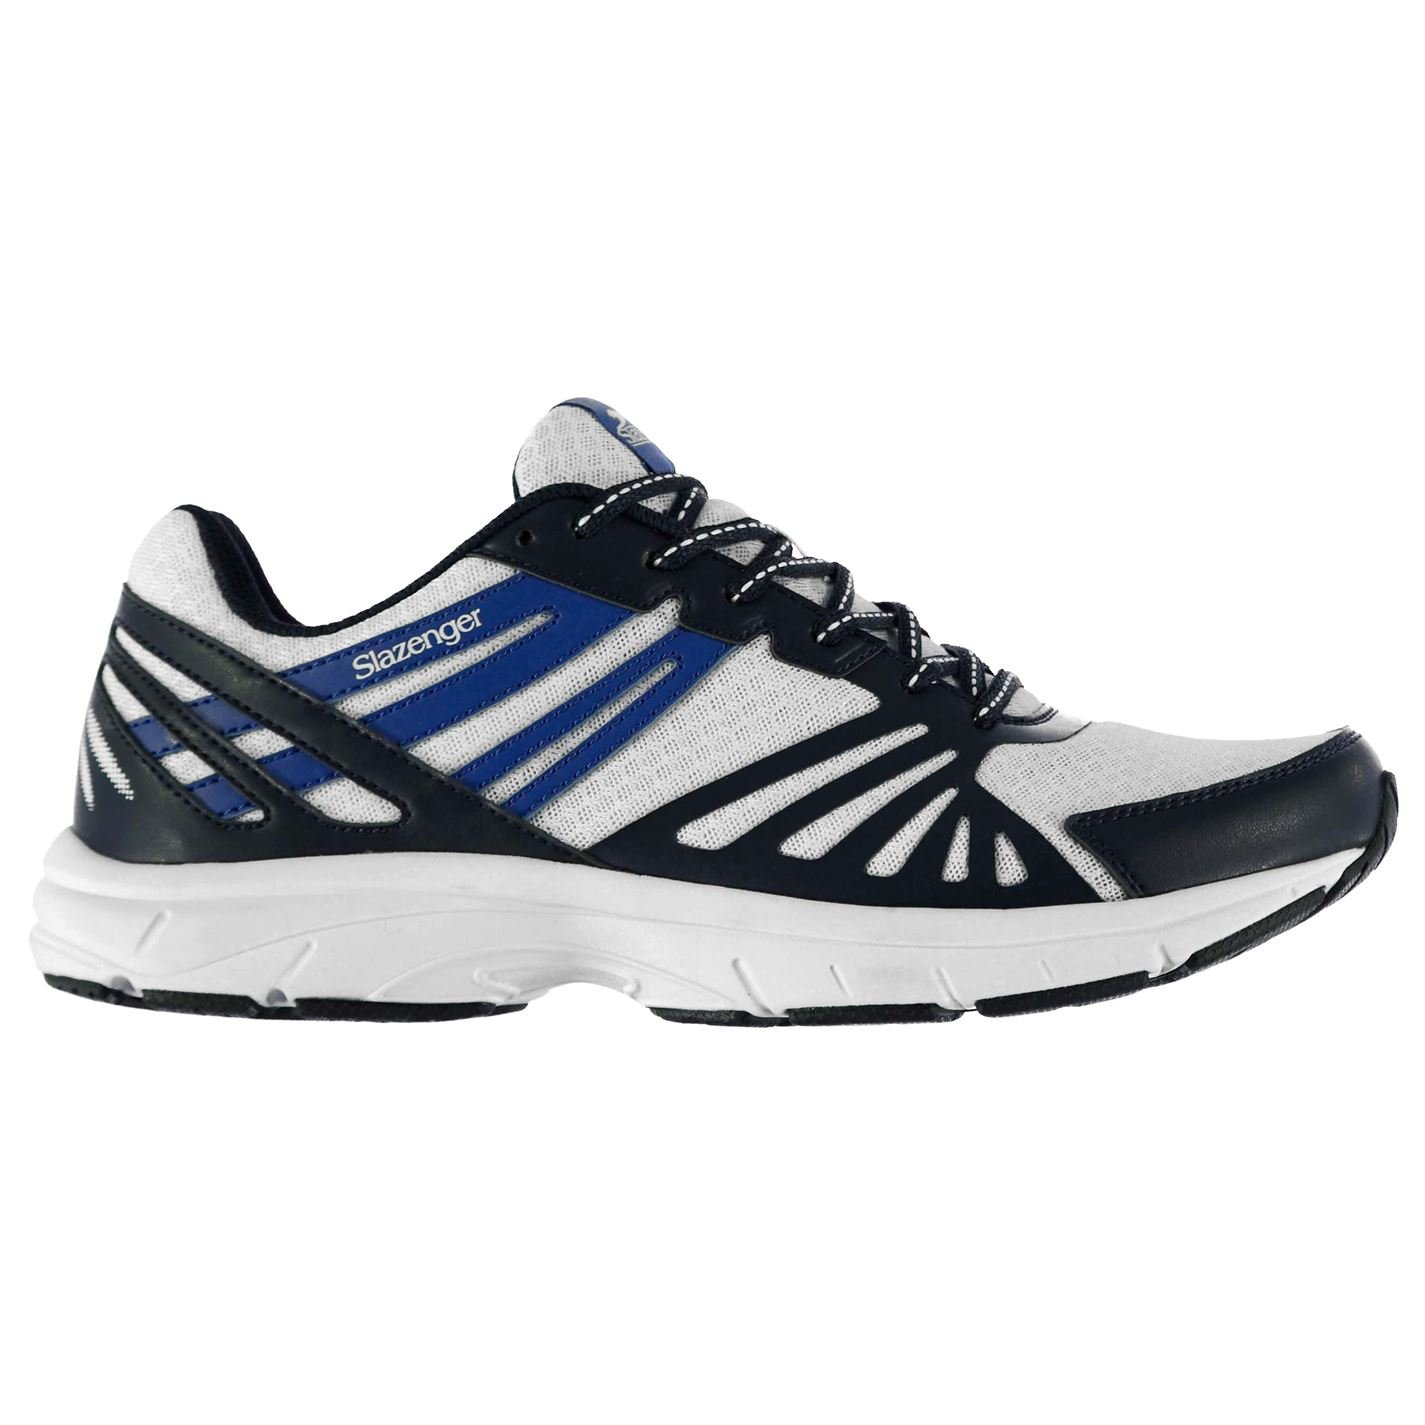 Slazenger Kids Dash Jogger Trainers Shoes Lace Up Mesh Padded Ankle Collar White/Navy UK 3 (36)